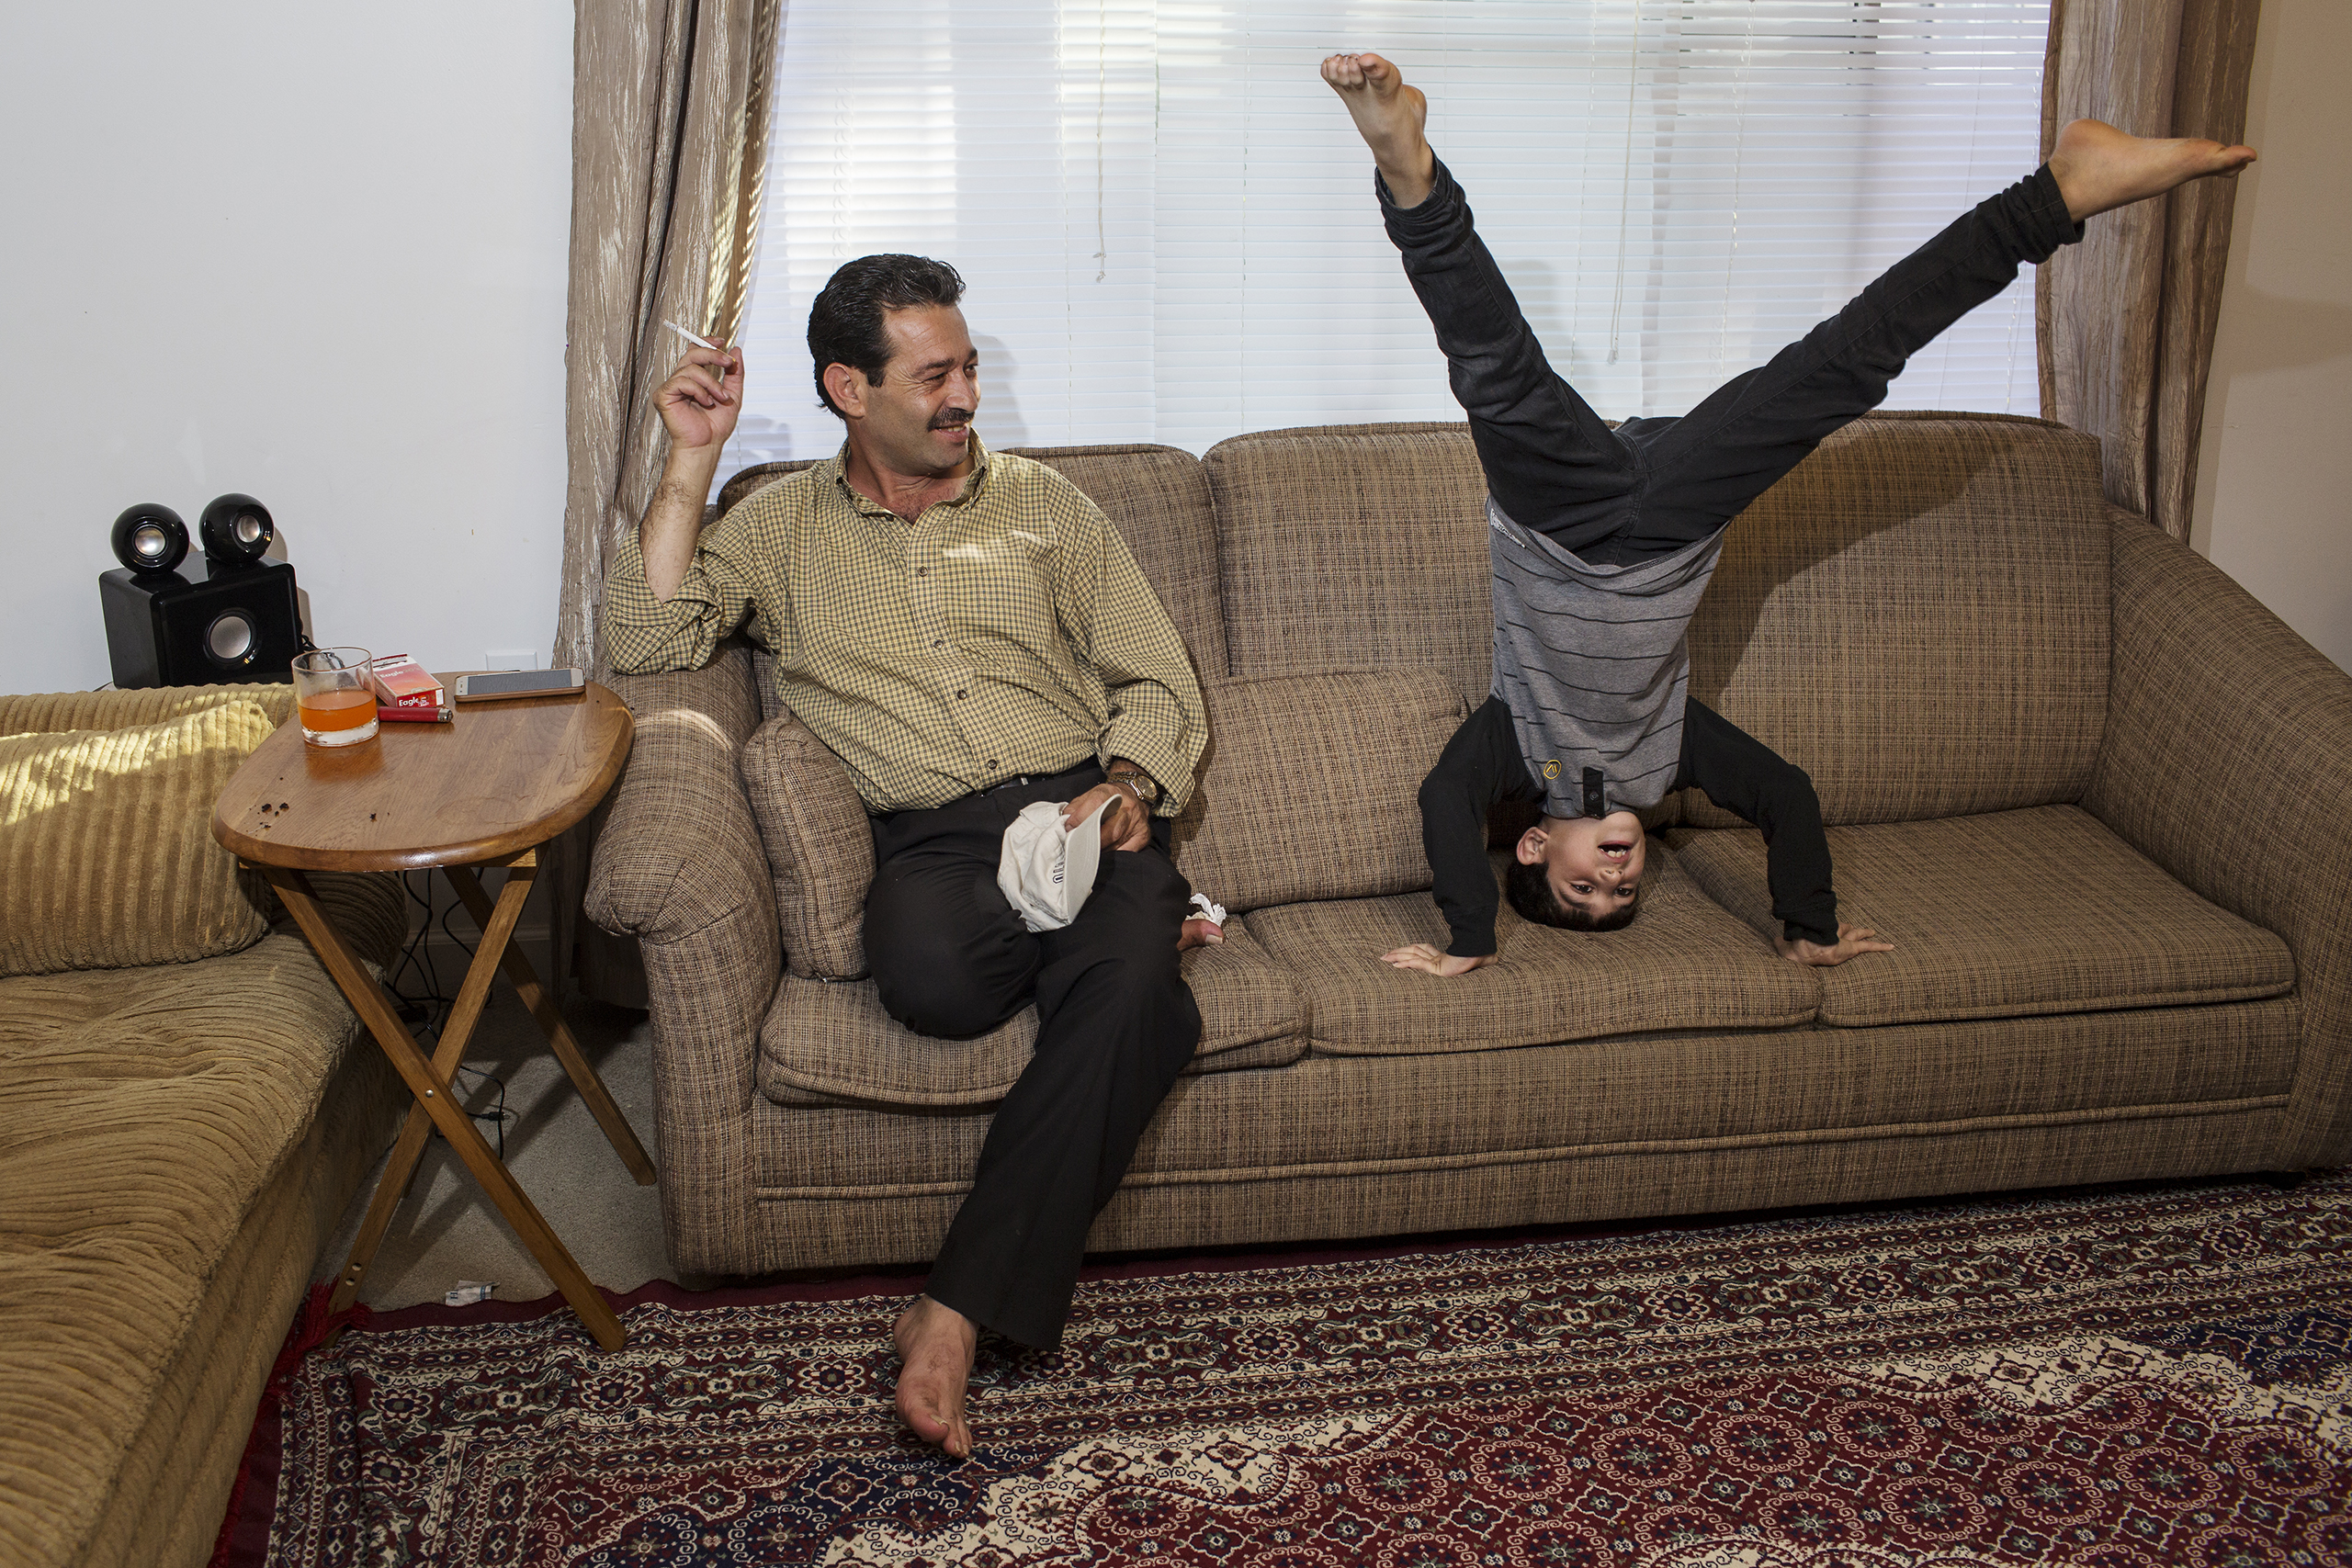 Mutaz Tameem, 6, plays inside the family's apartment in Des Moines, Iowa, while his father, Abdul Fattah, looks on.